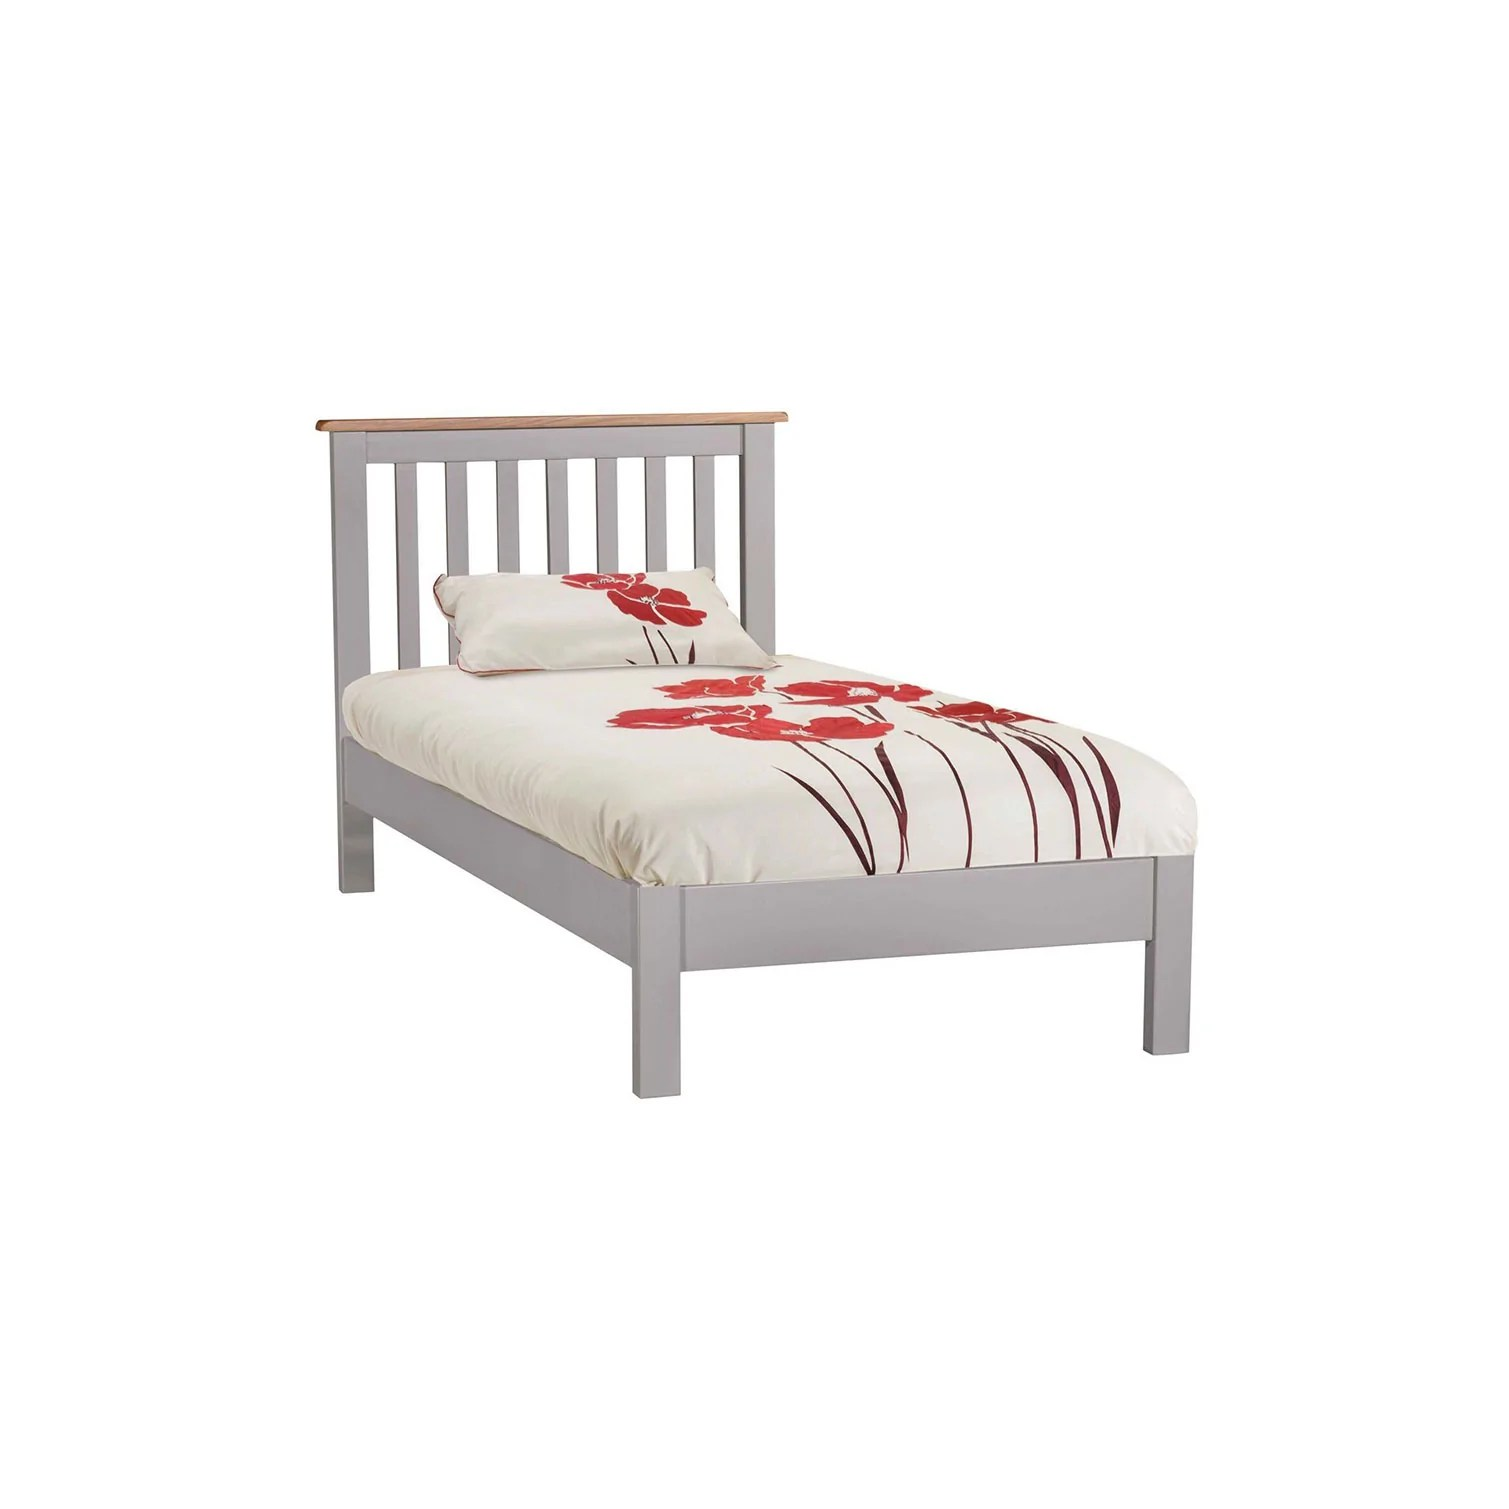 What Is The Length Of A Single Bed Cinza Single Bed